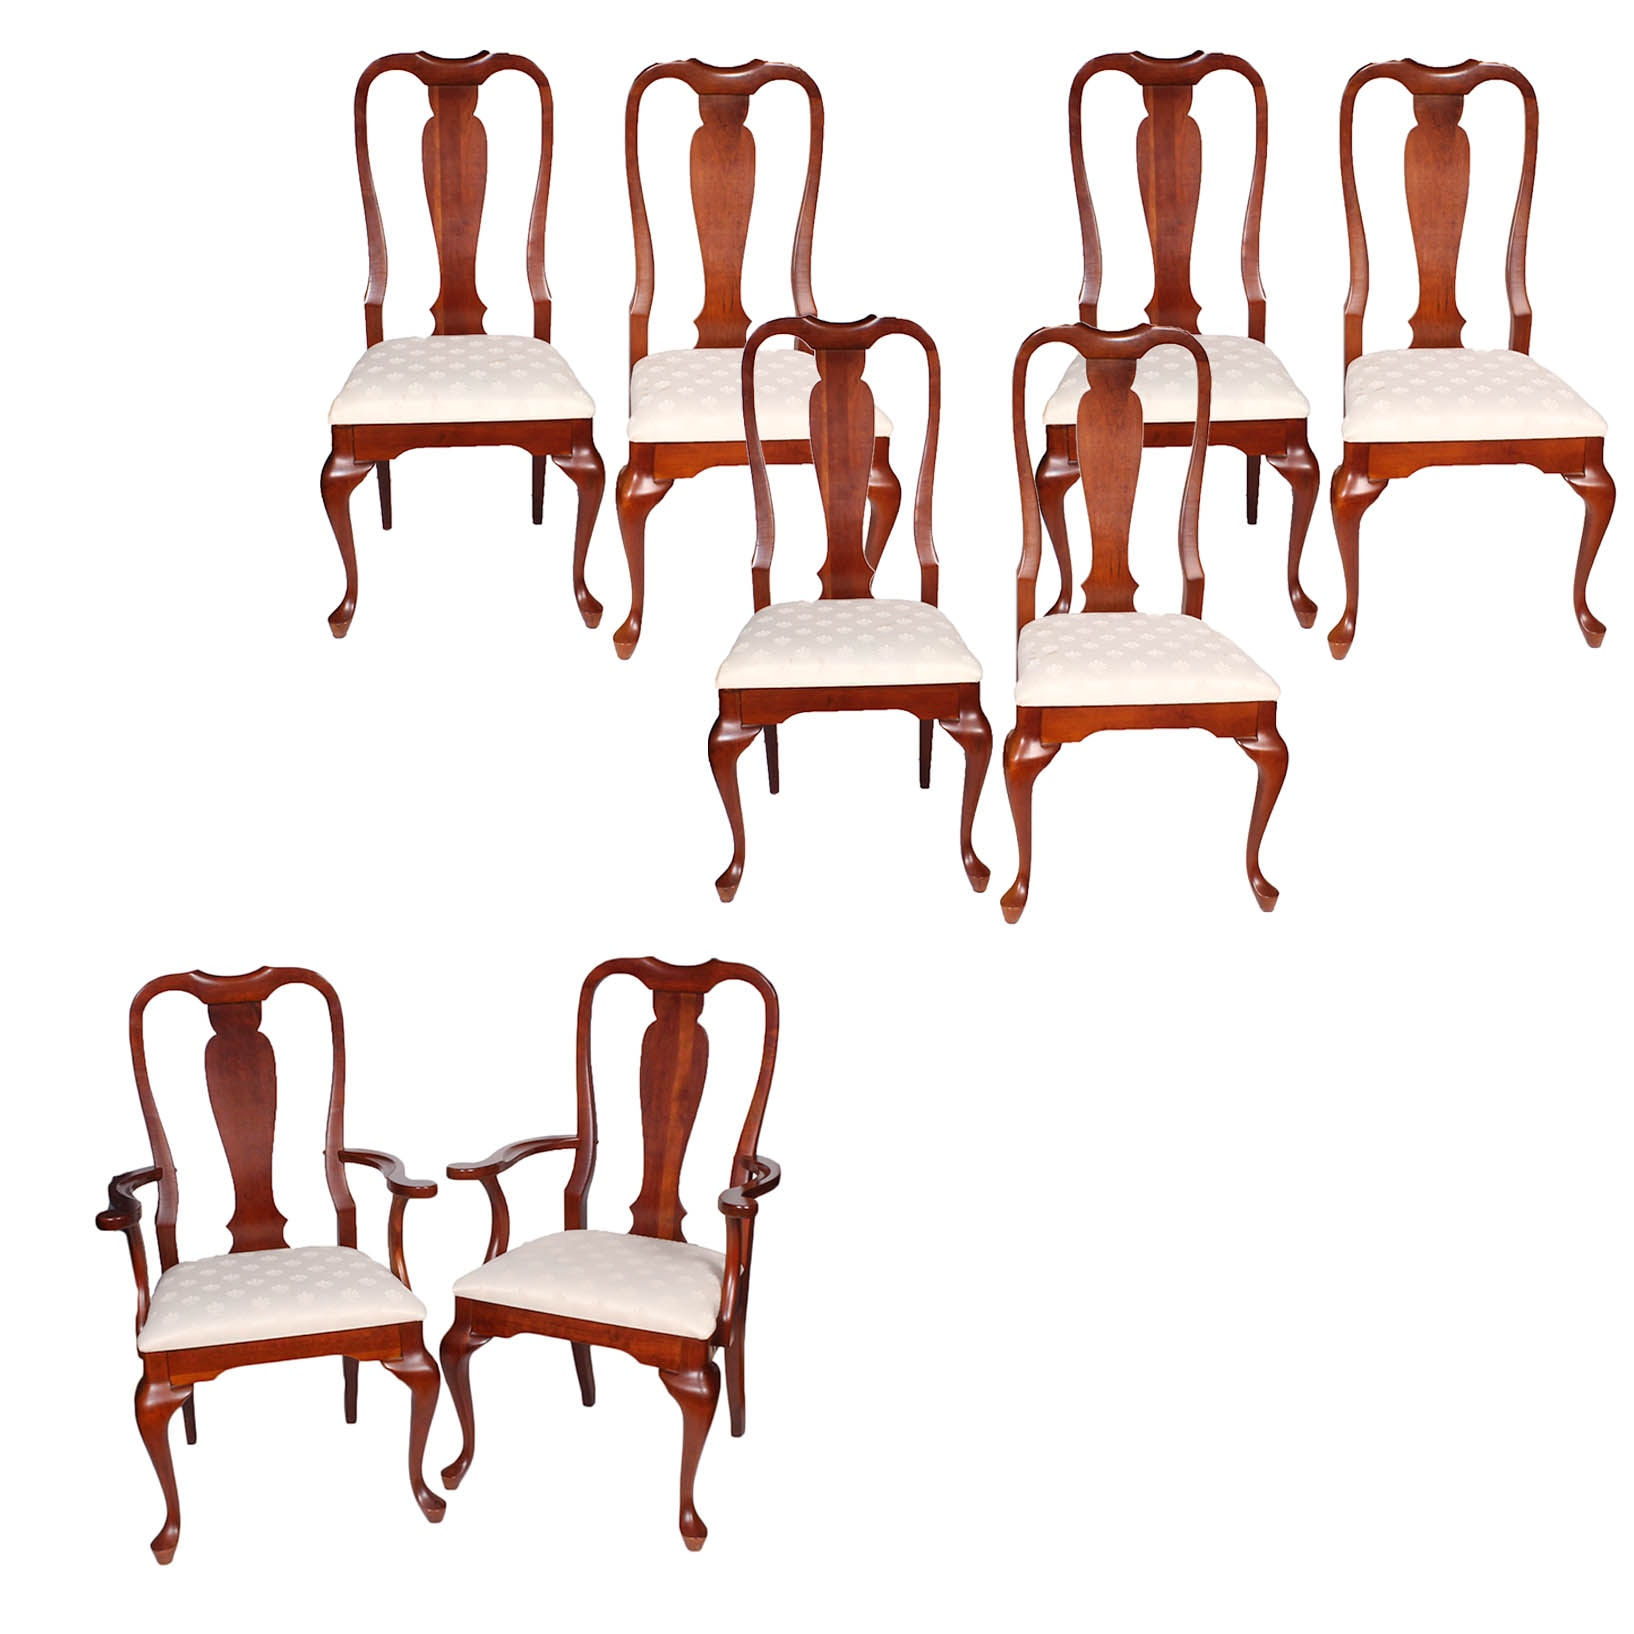 Crescent Furniture Solid Wood Dining Chairs